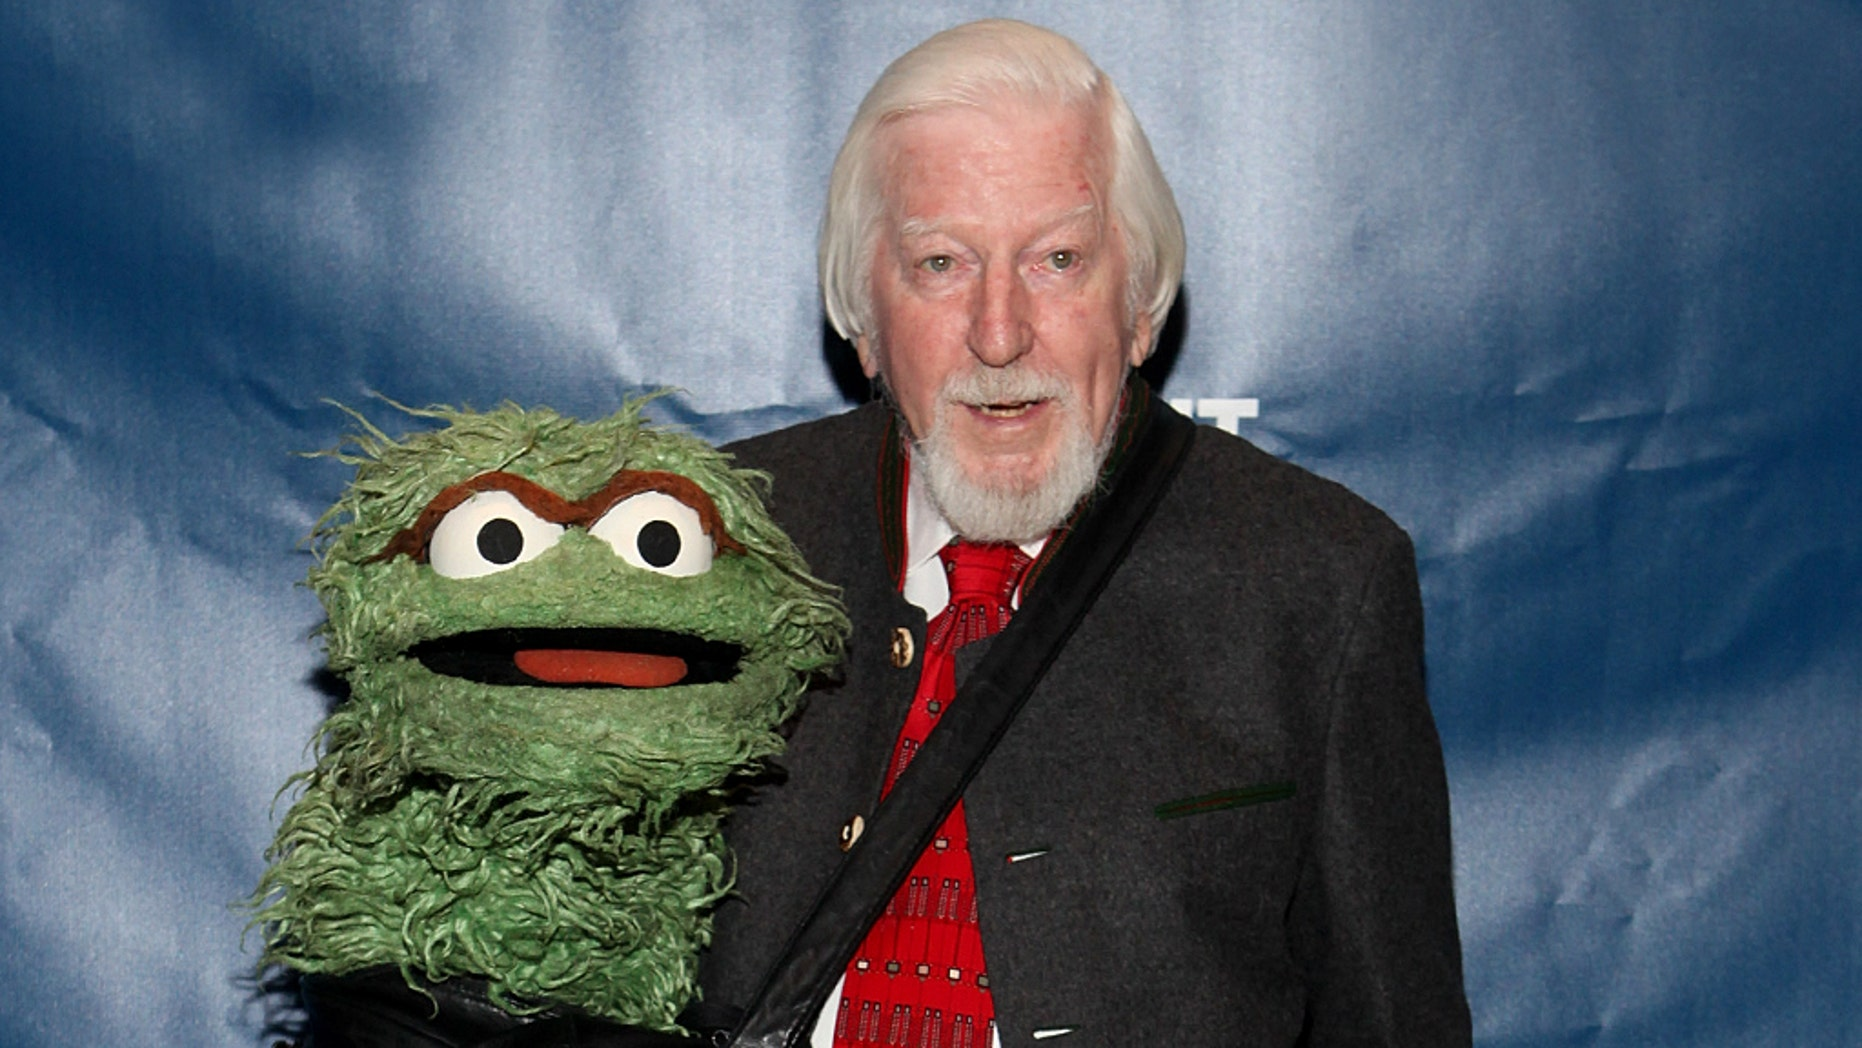 Caroll Spinney, 'Sesame Street' Big Bird puppeteer, retiring after almost 50 years